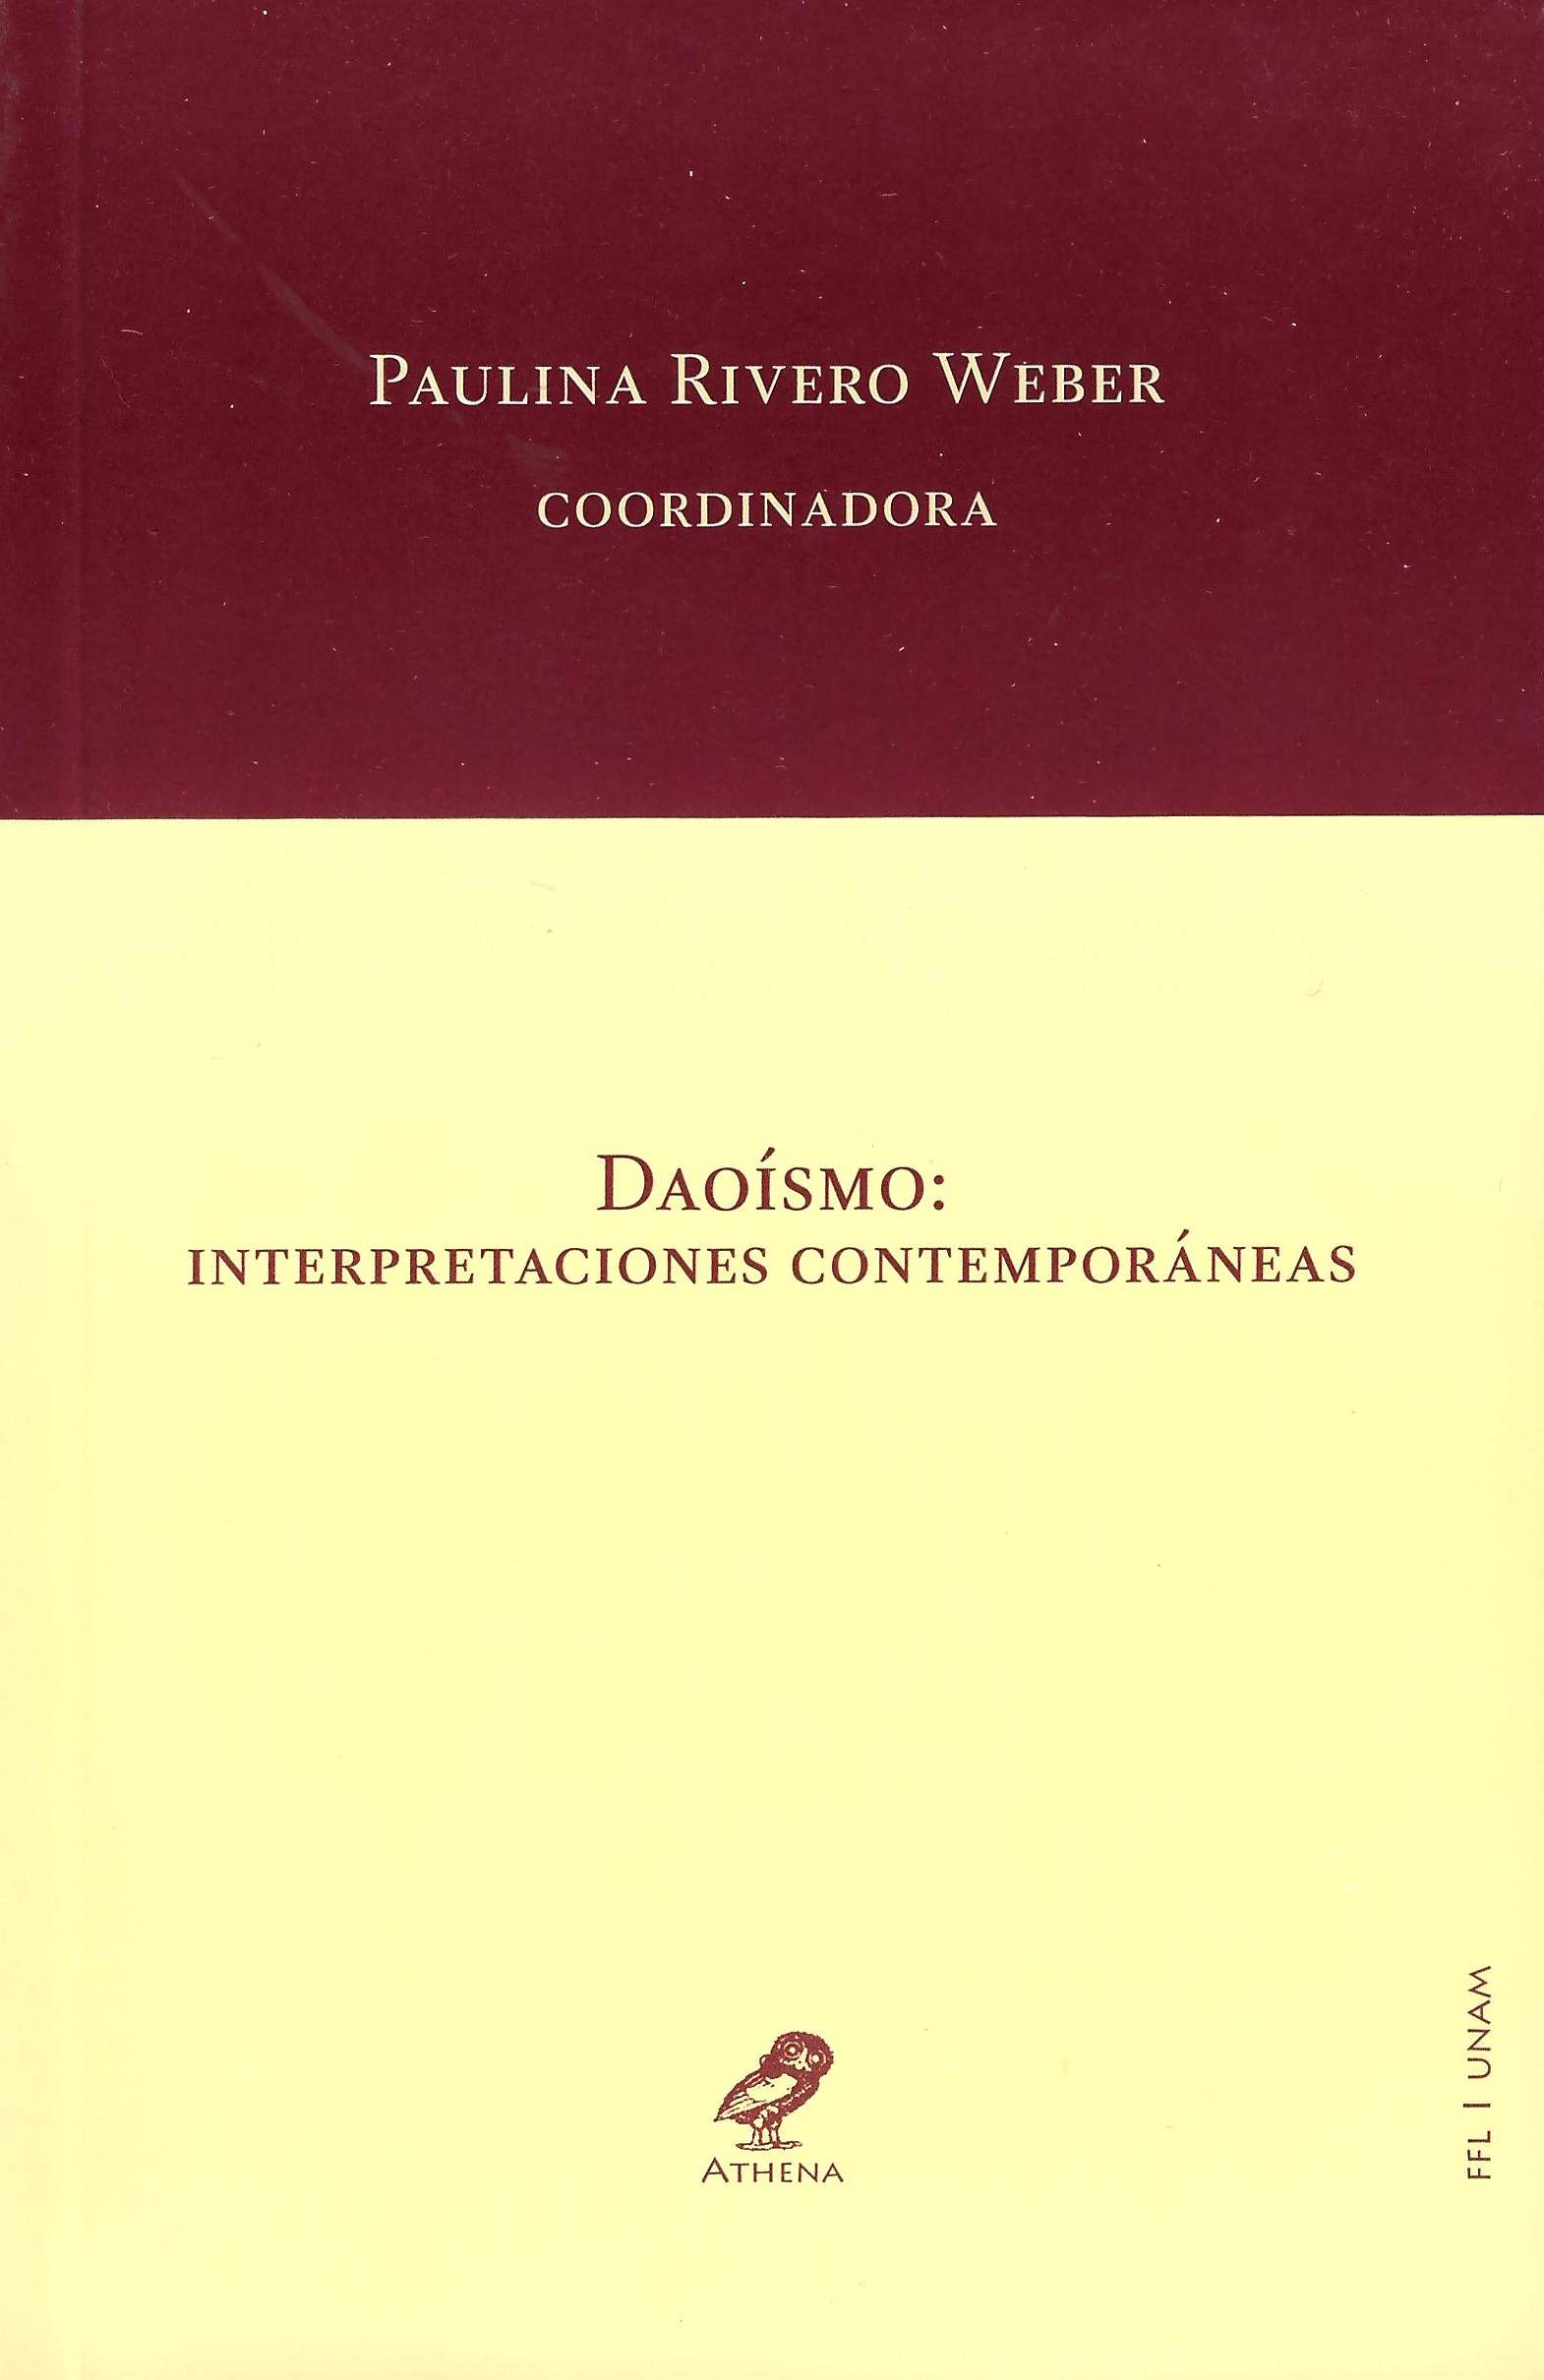 Daoísmo: interpretaciones contemporáneas